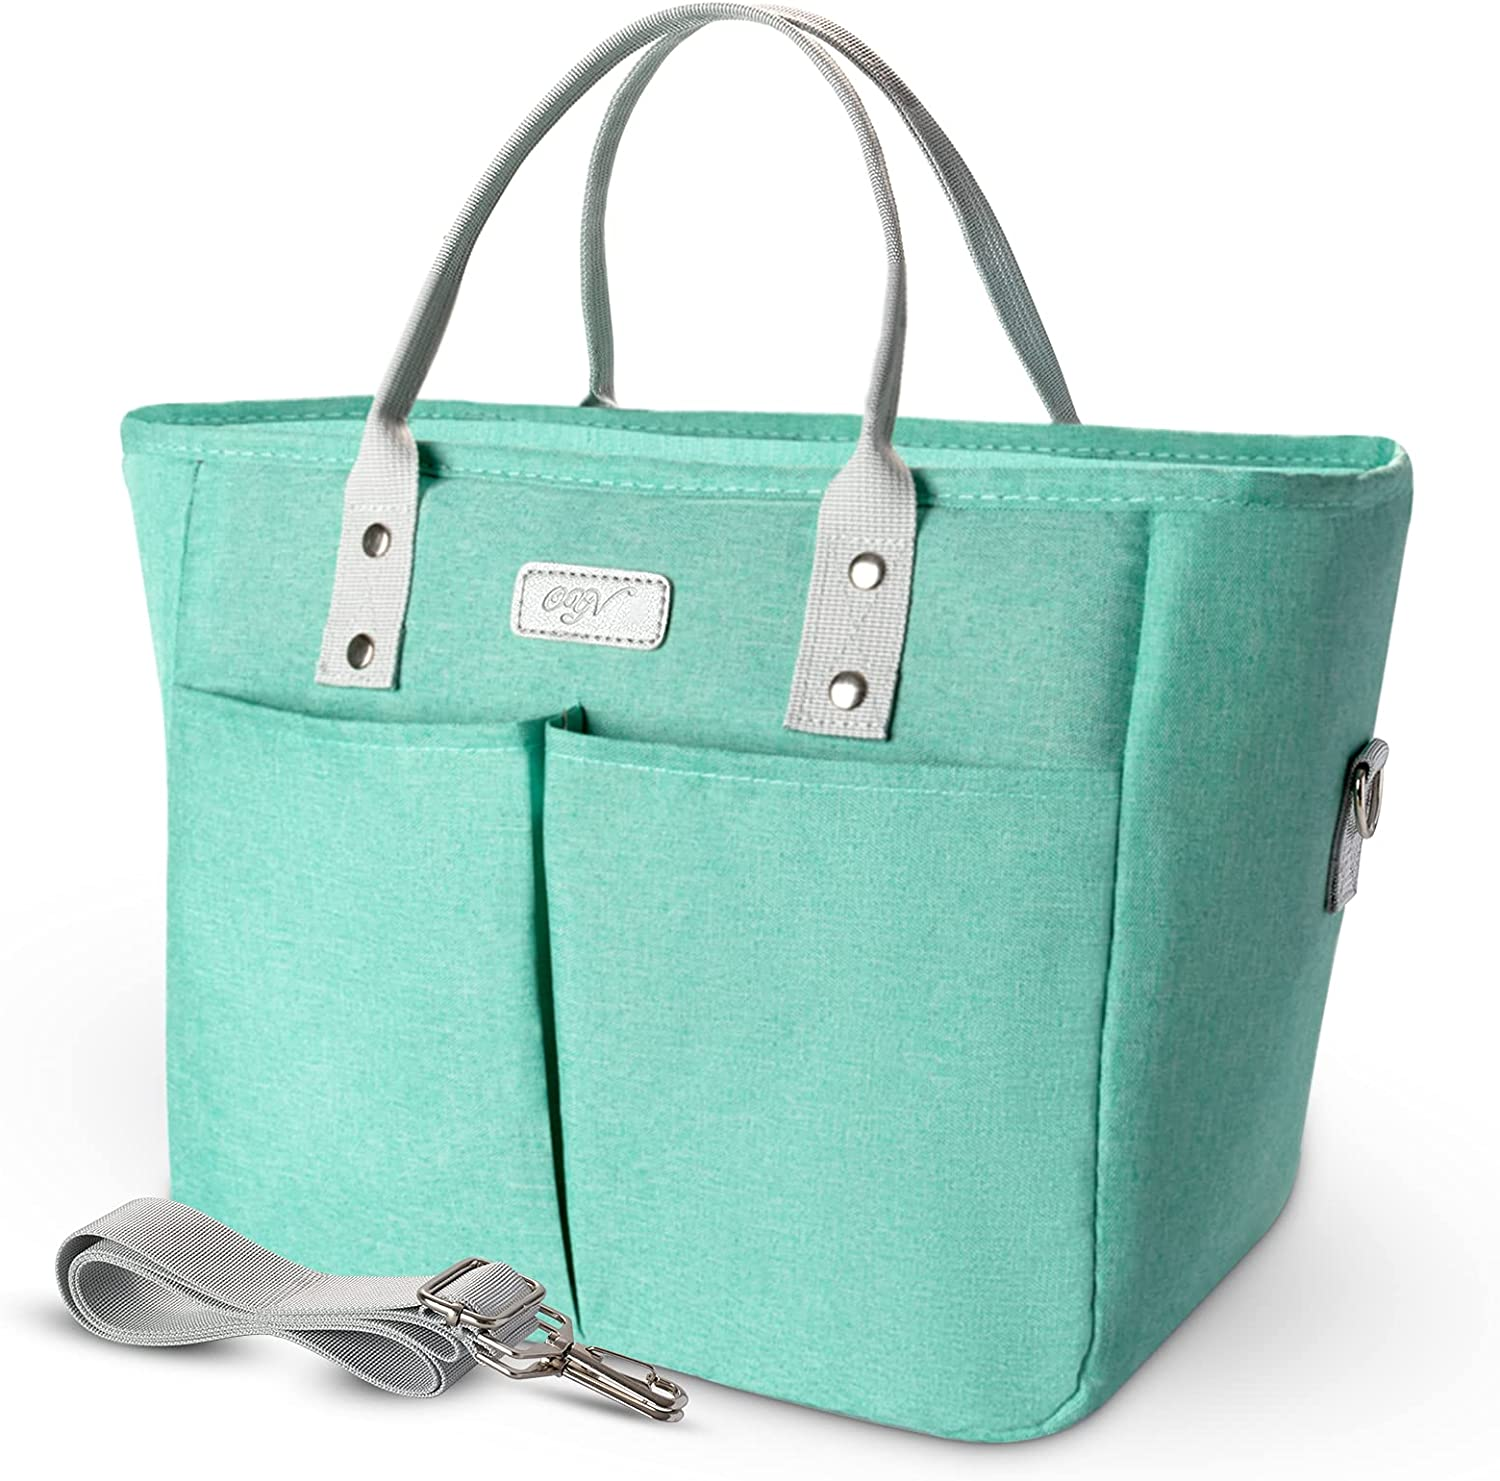 OYV Lunch Bag, Insulated Reusable Lunch Box, Adult Lunch Bags for Women with Adjustable Shoulder Strap for Work, School, Travel and Picnic (Aqua Green)